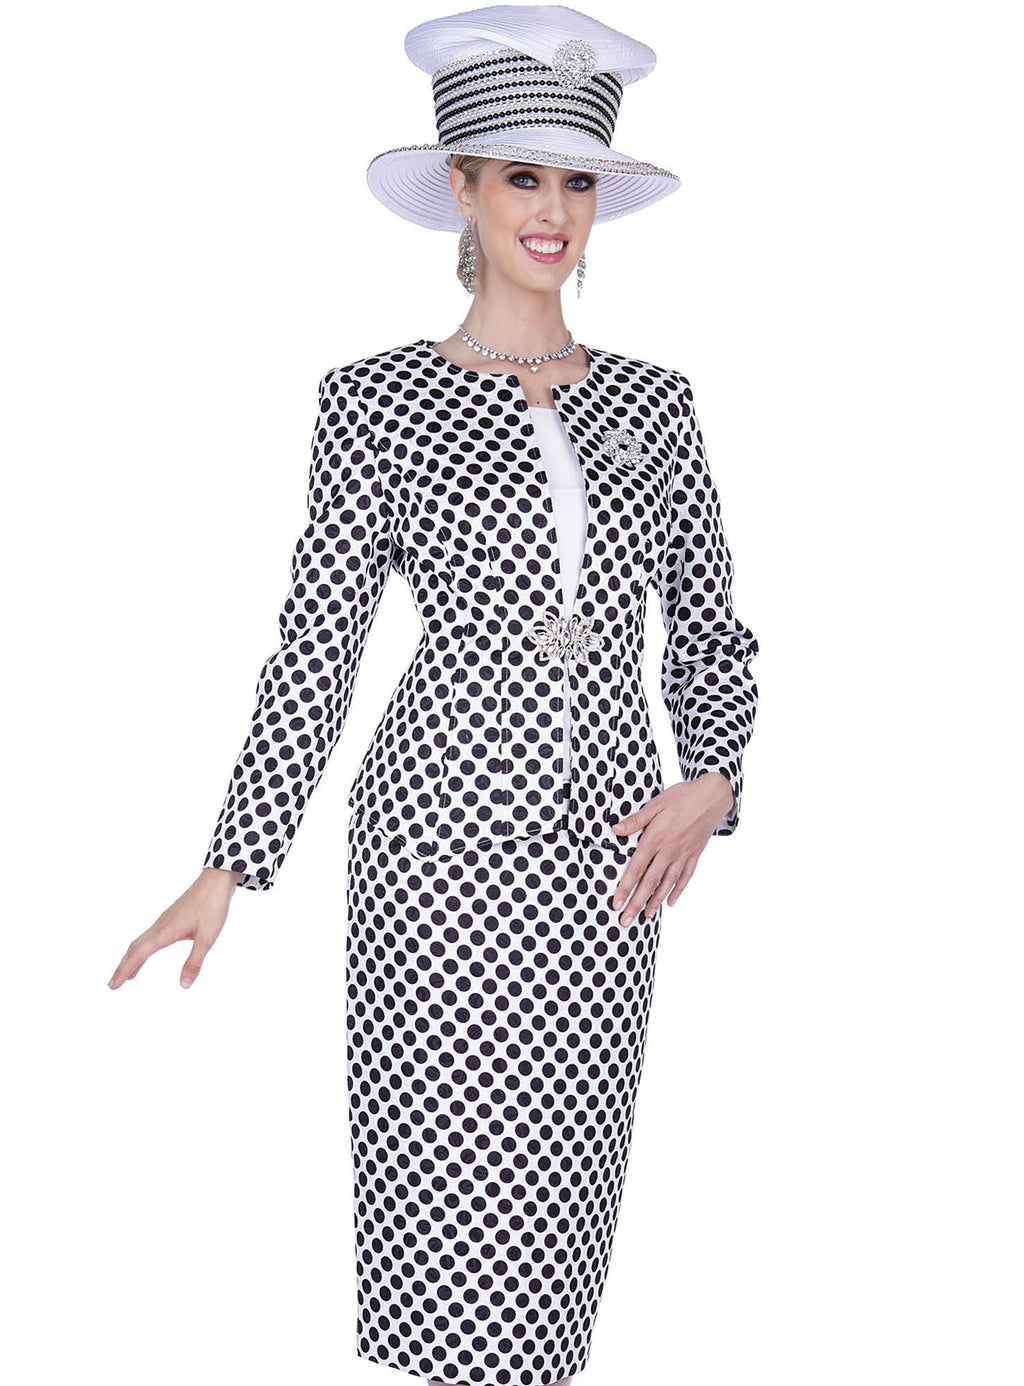 Black & White Polka Dot Suit